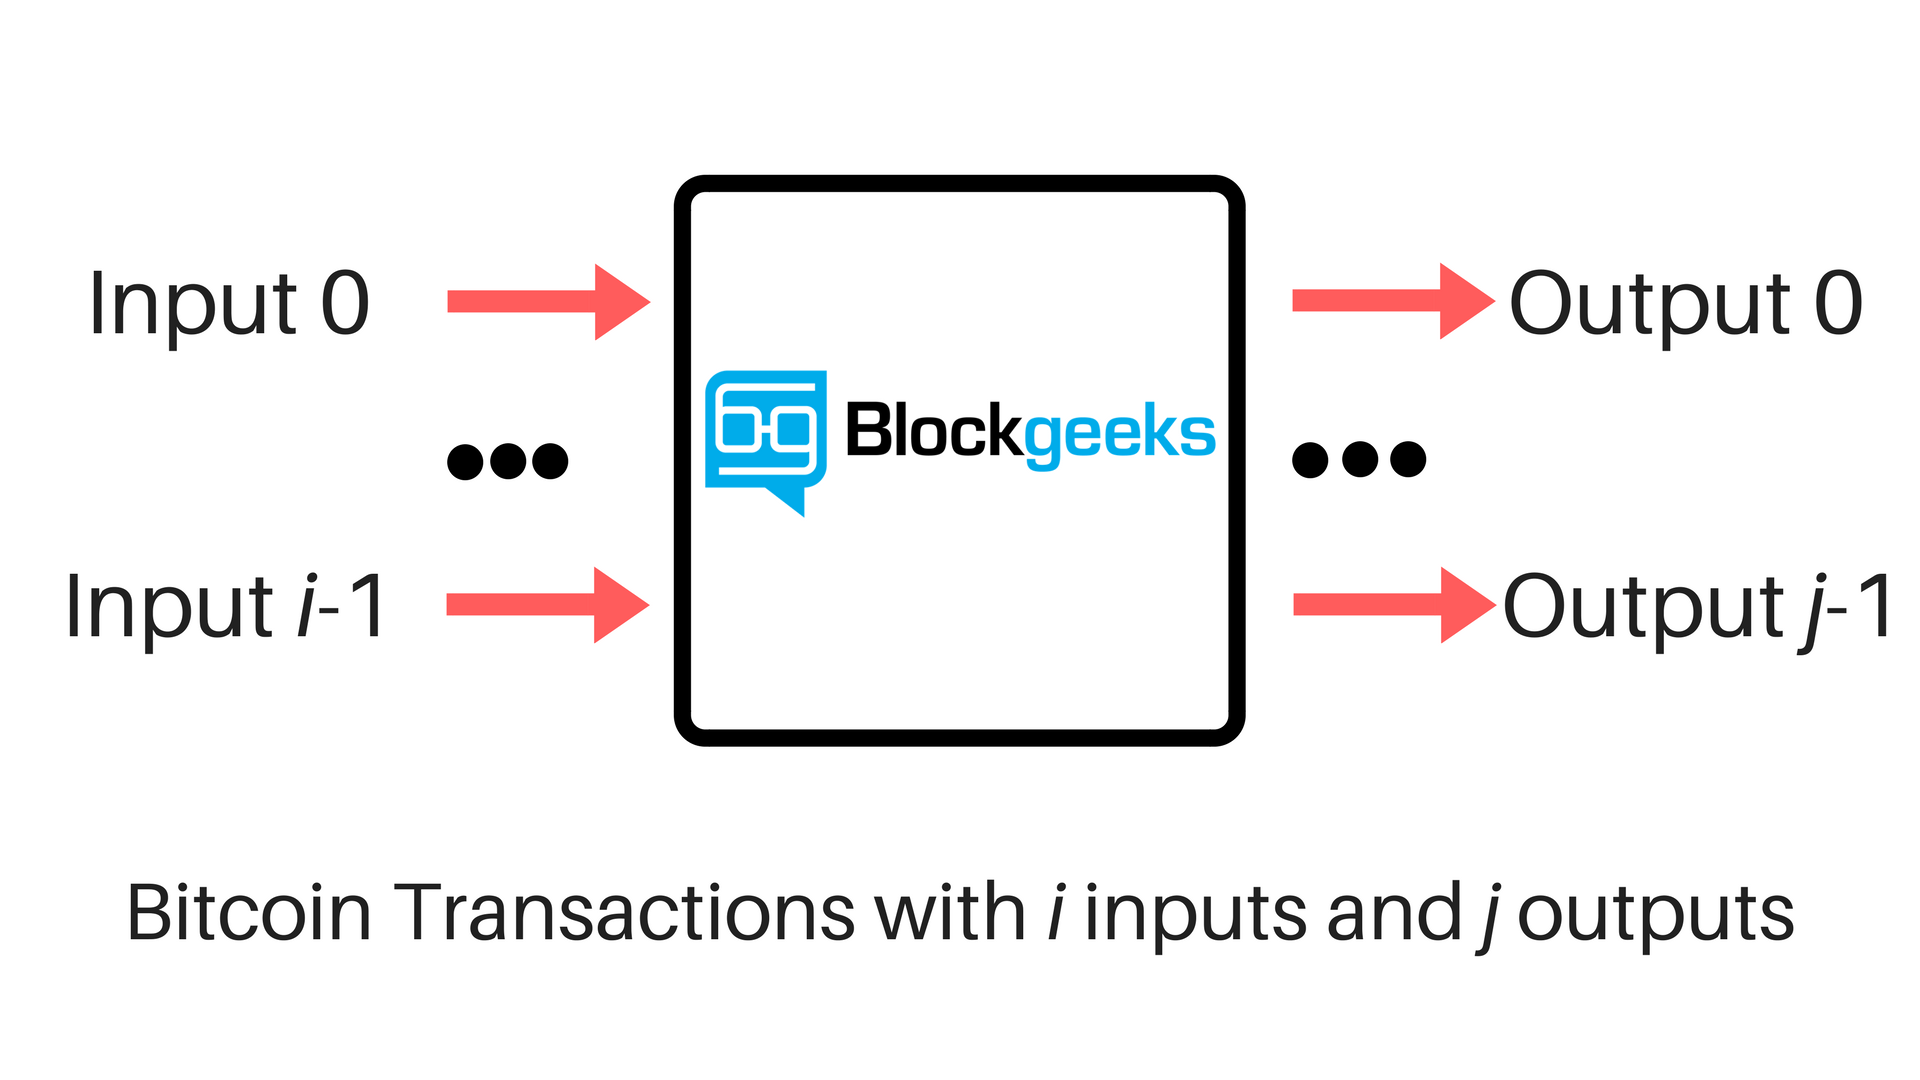 Transaction Fee, Miner Fee